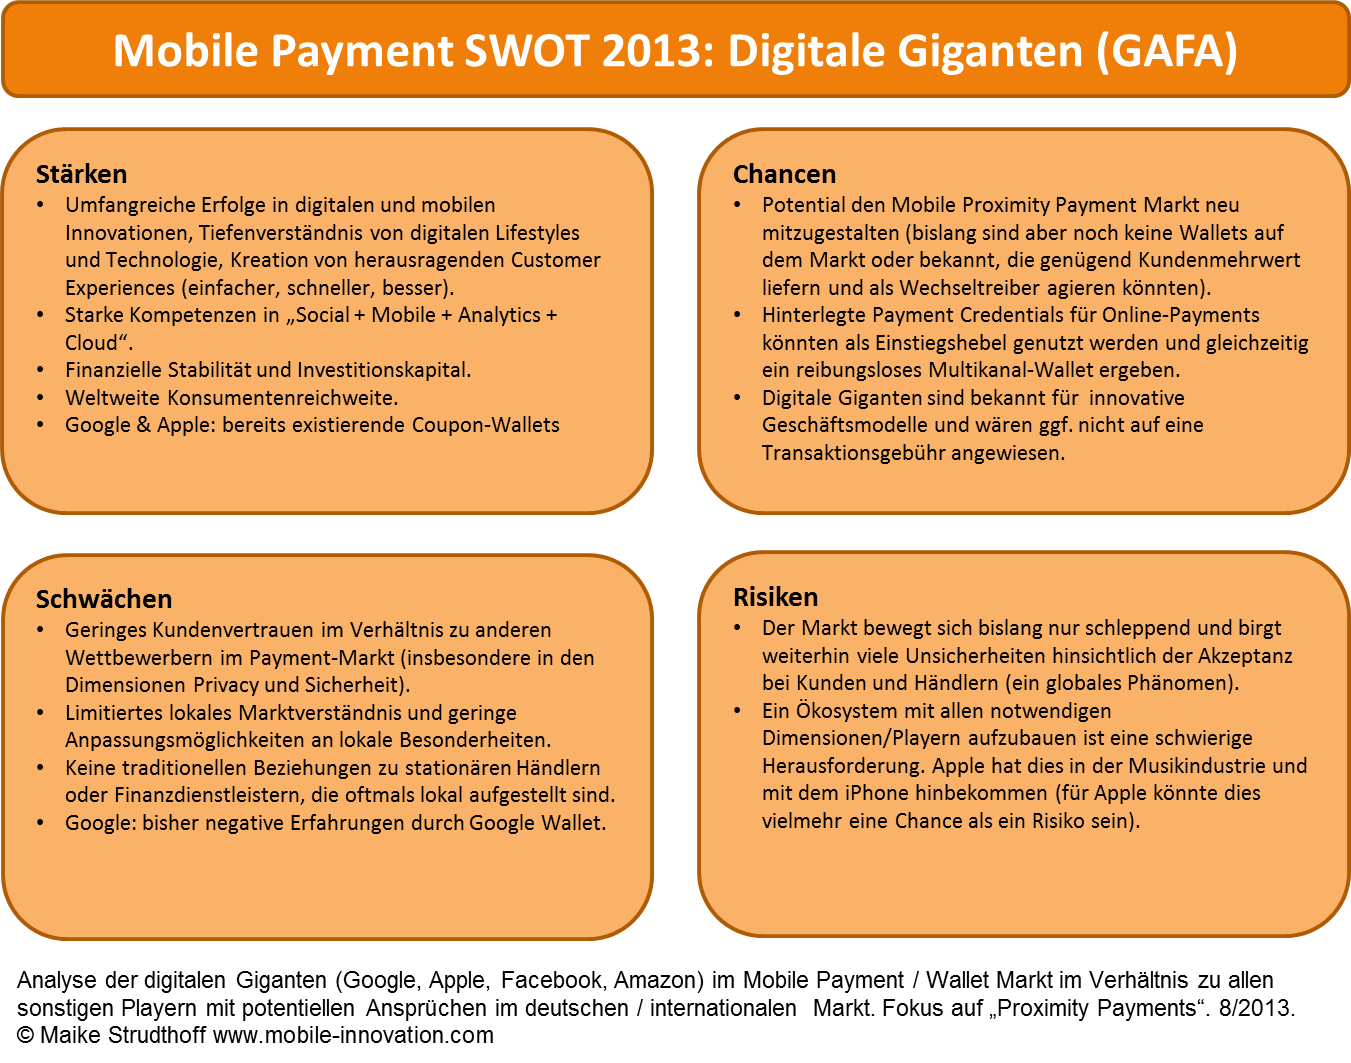 swot analysis iphone Strengths - integration complete chain - 1 device, 2 current models (16 or 8gb), the hardware, the os, the app store, the itunes integration, the potential integration in leopard and snow leopard.